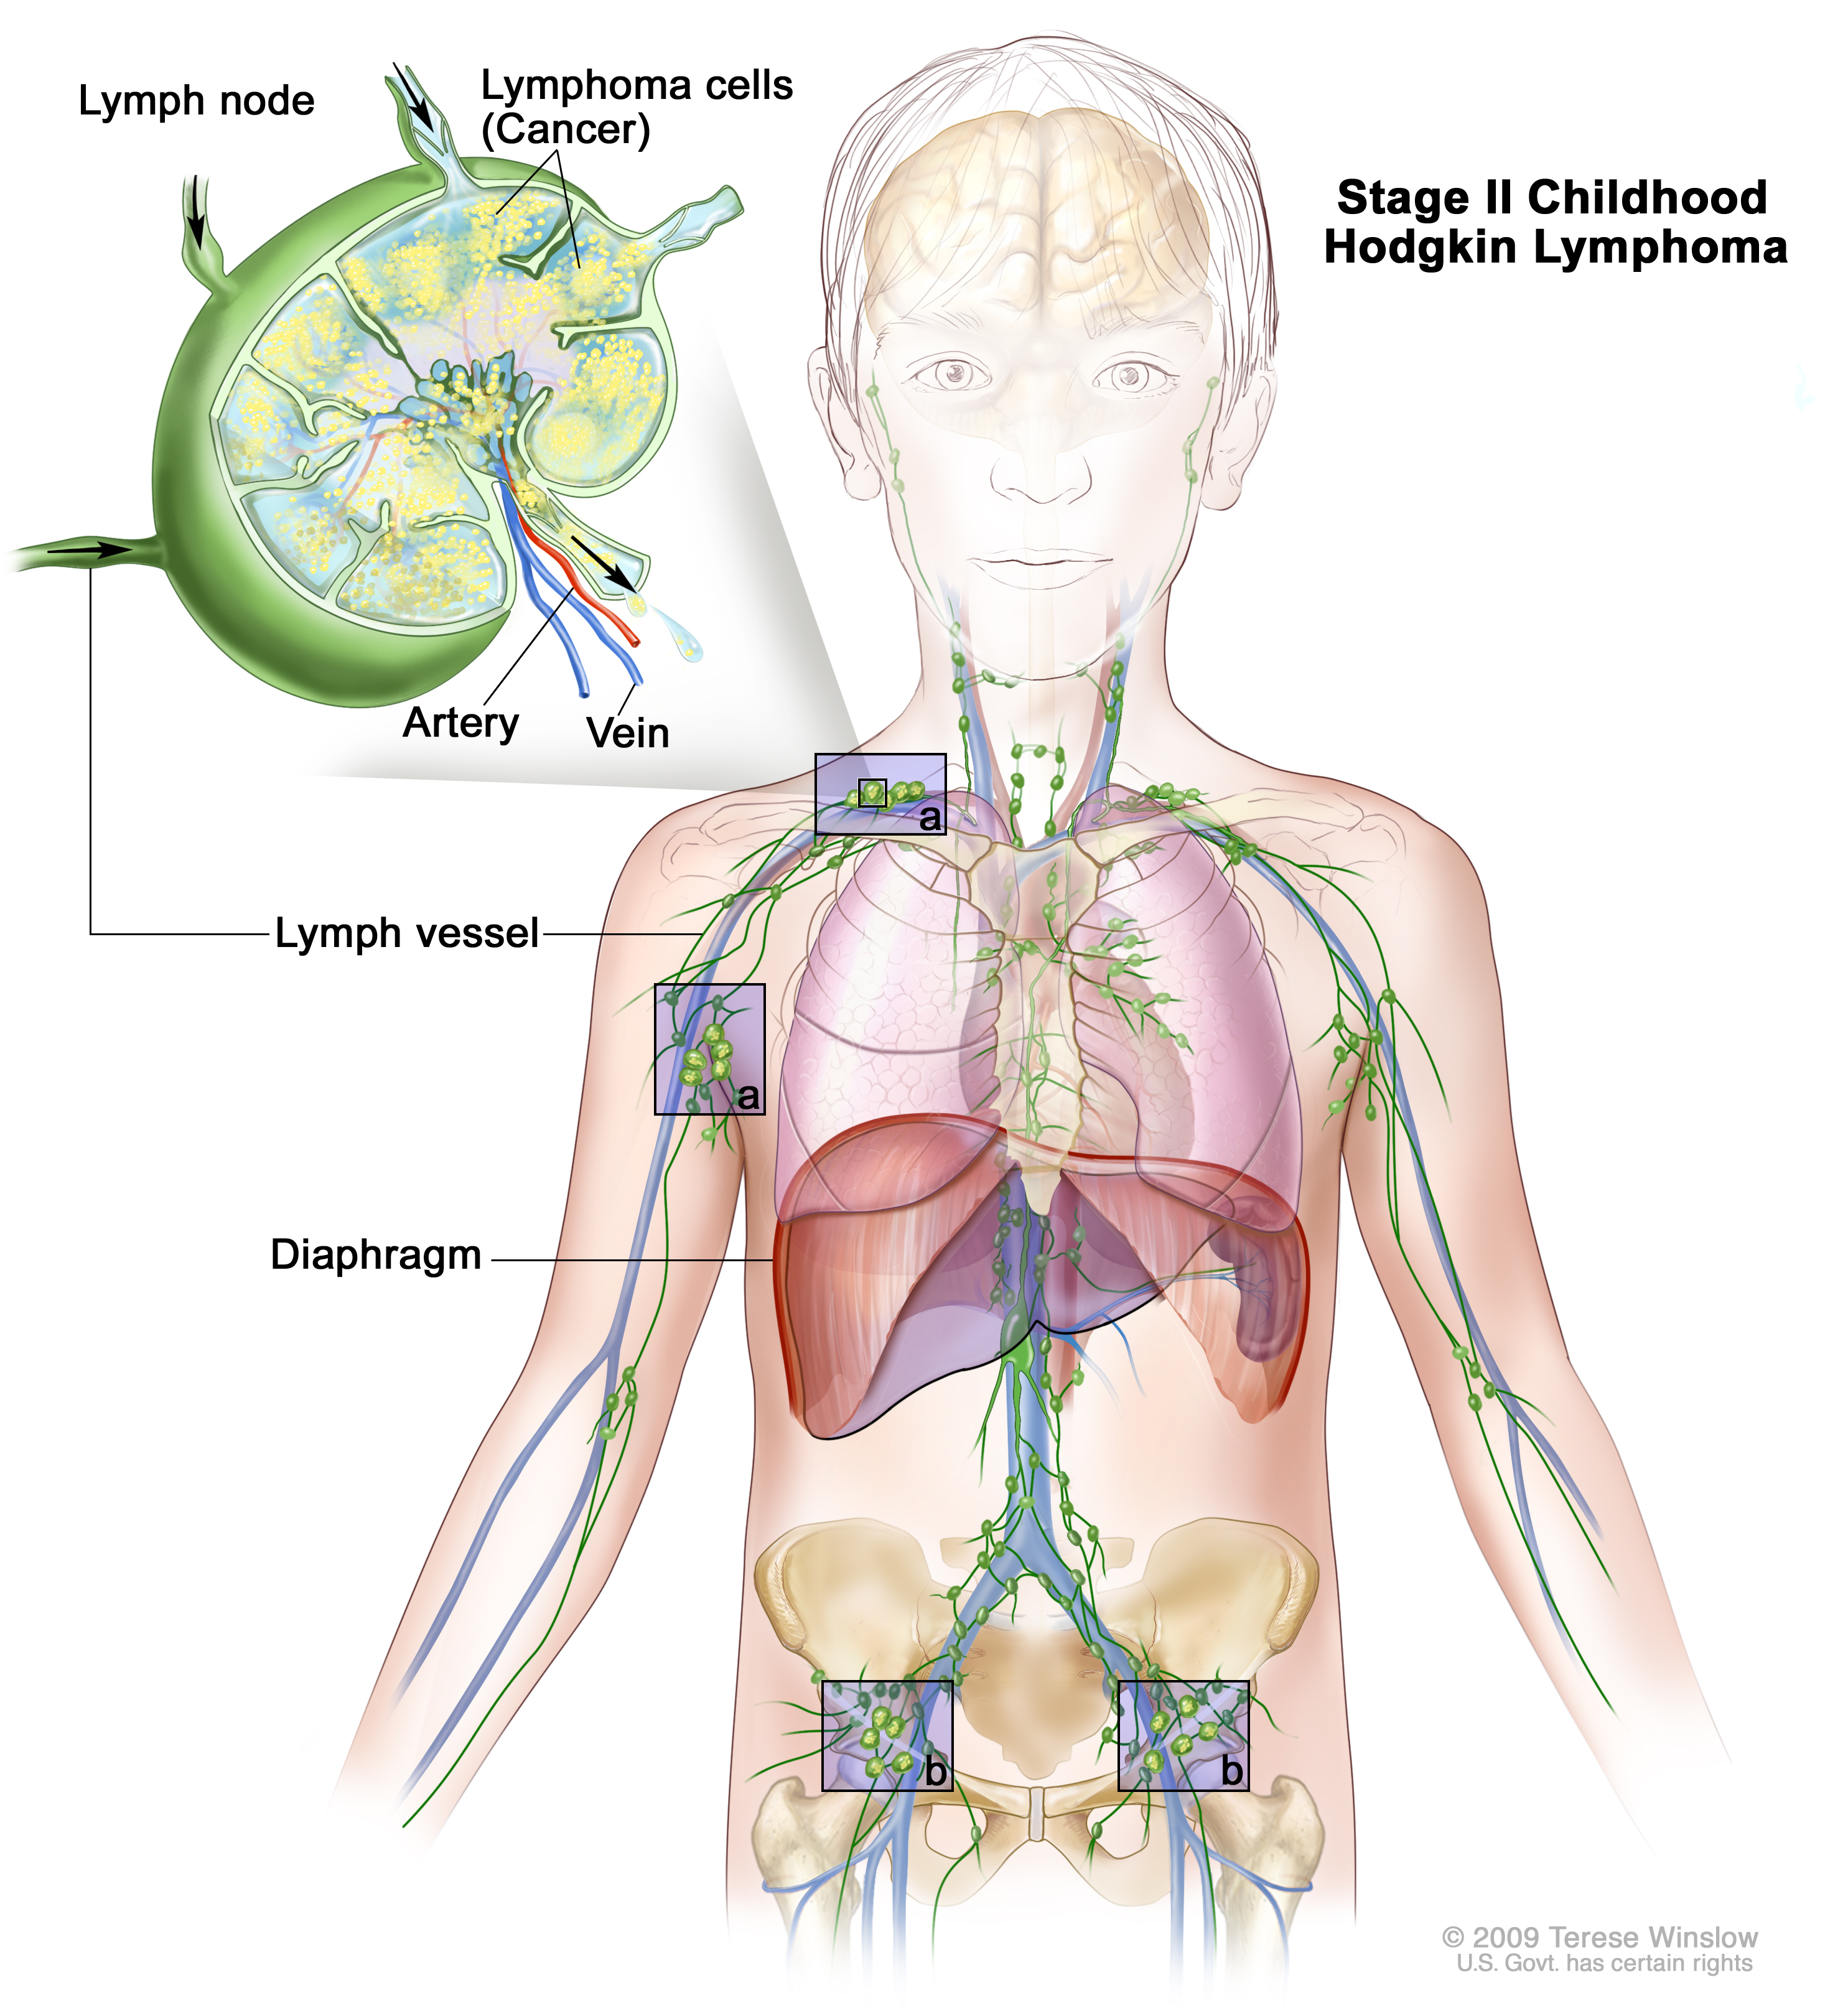 Stage II childhood Hodgkin lymphoma; drawing shows cancer in lymph node groups above and below the diaphragm. An inset shows a lymph node with a lymph vessel, an artery, and a vein. Lymphoma cells containing cancer are shown in the lymph node.